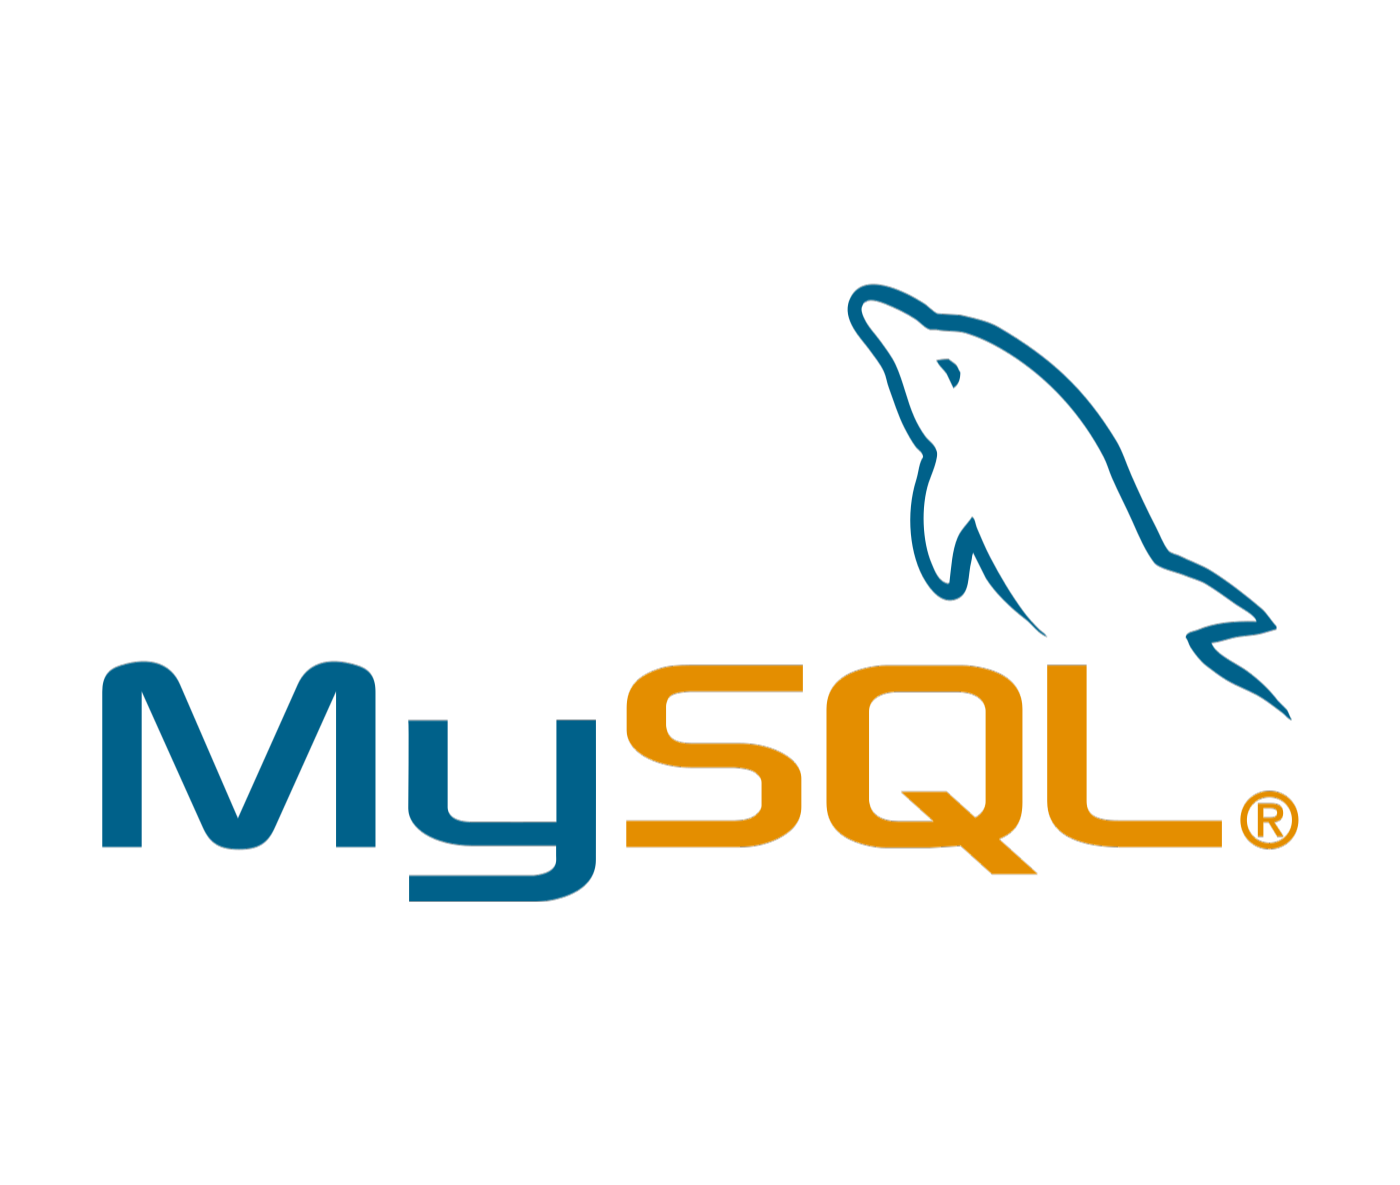 MySQL is known as one of the strongest open-source databases available, particularly performant, reliable, and easy to use.